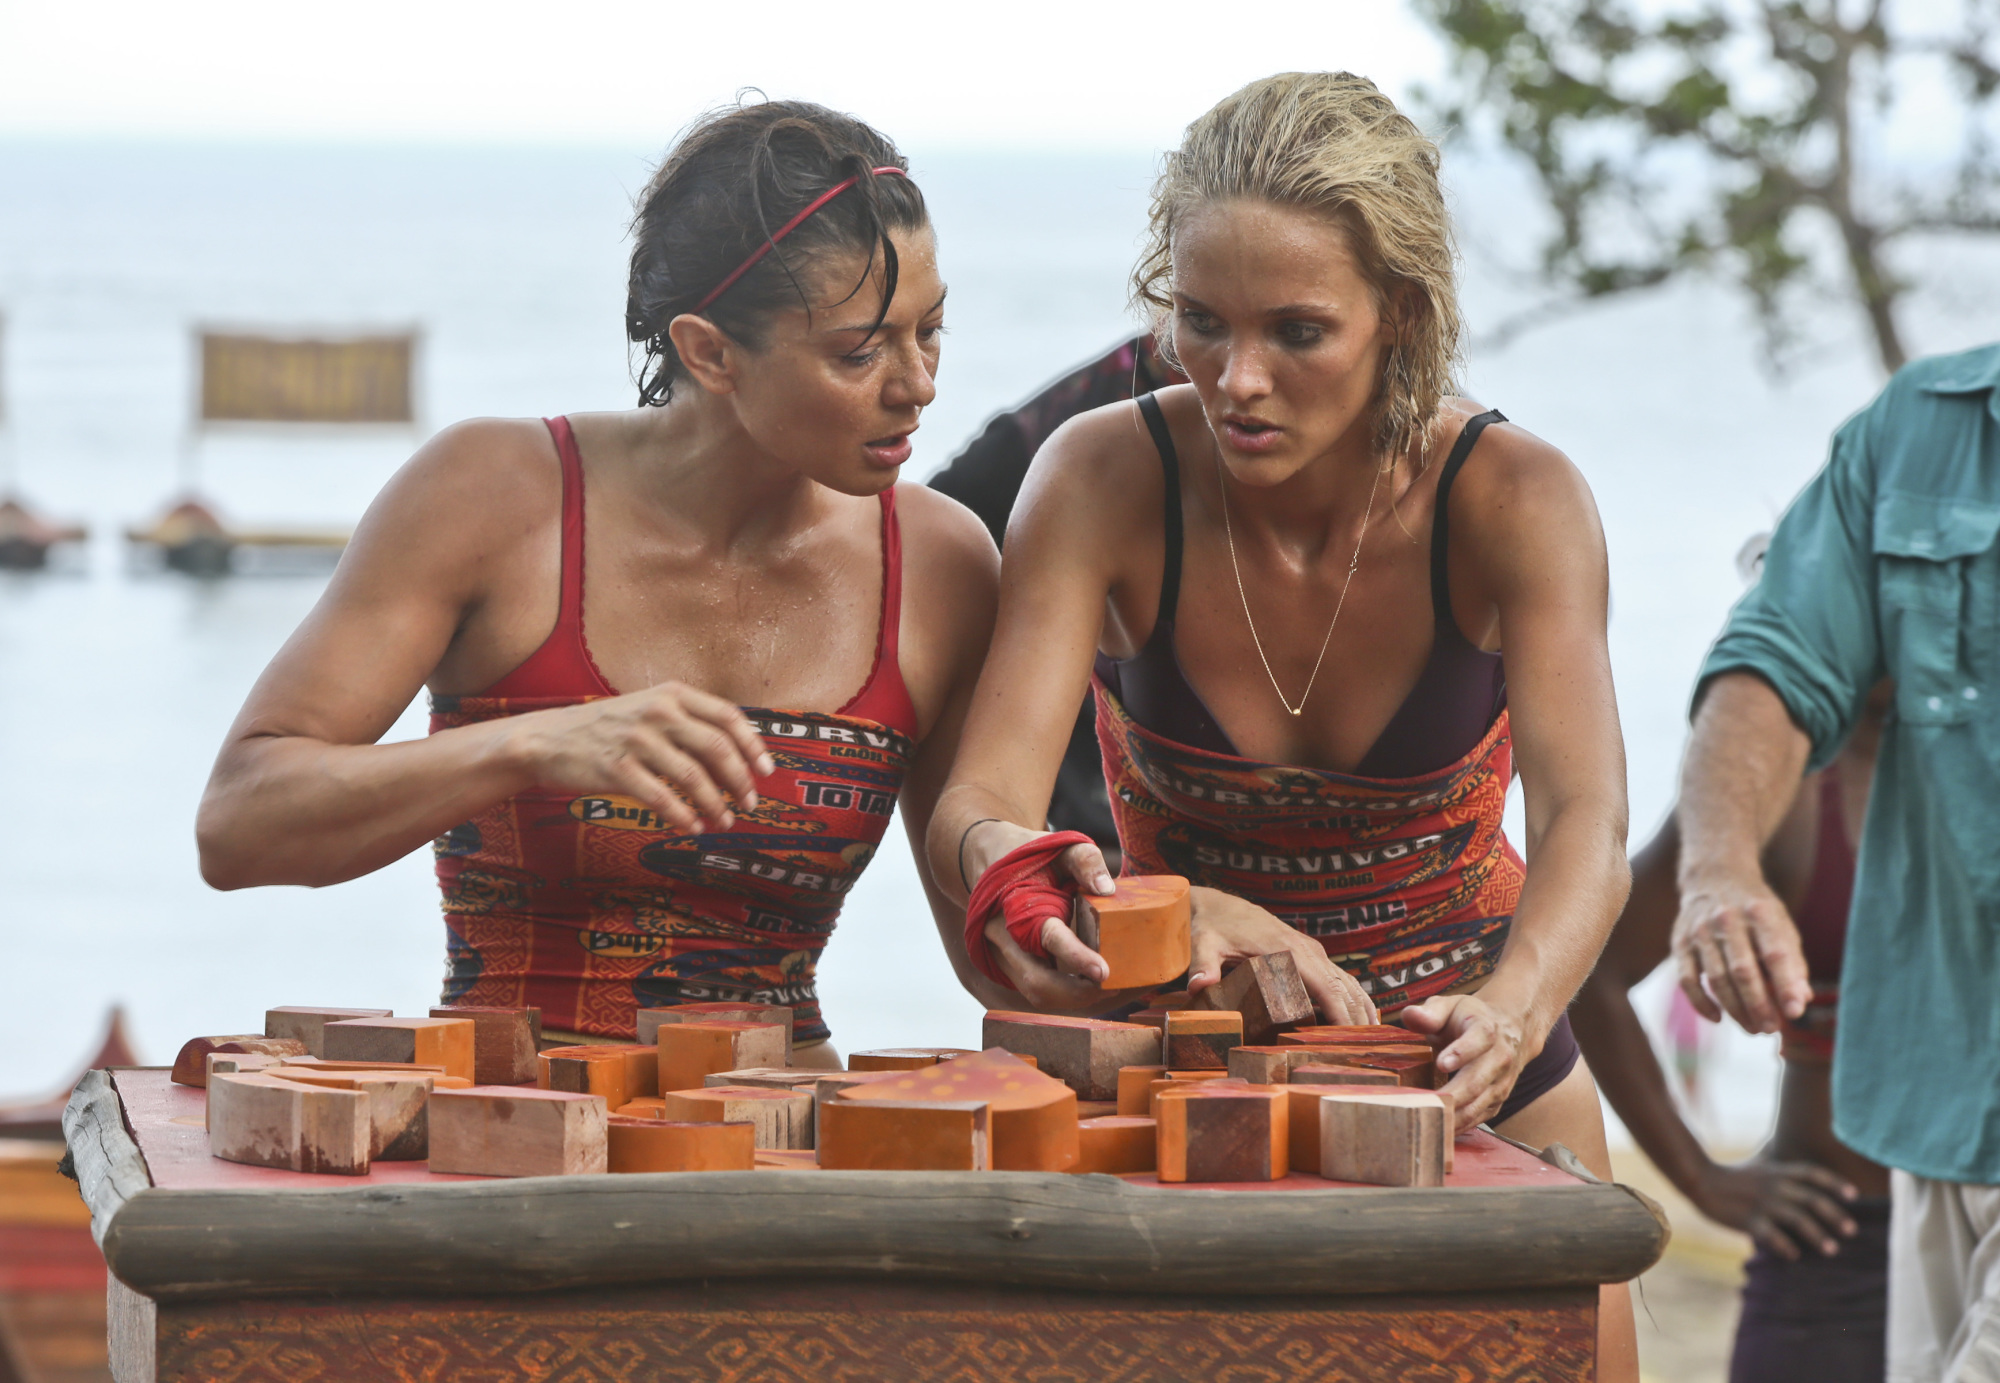 Jennifer Lanzetti and Alecia Holden work on puzzle in Survivor: Kaoh Rong challenge